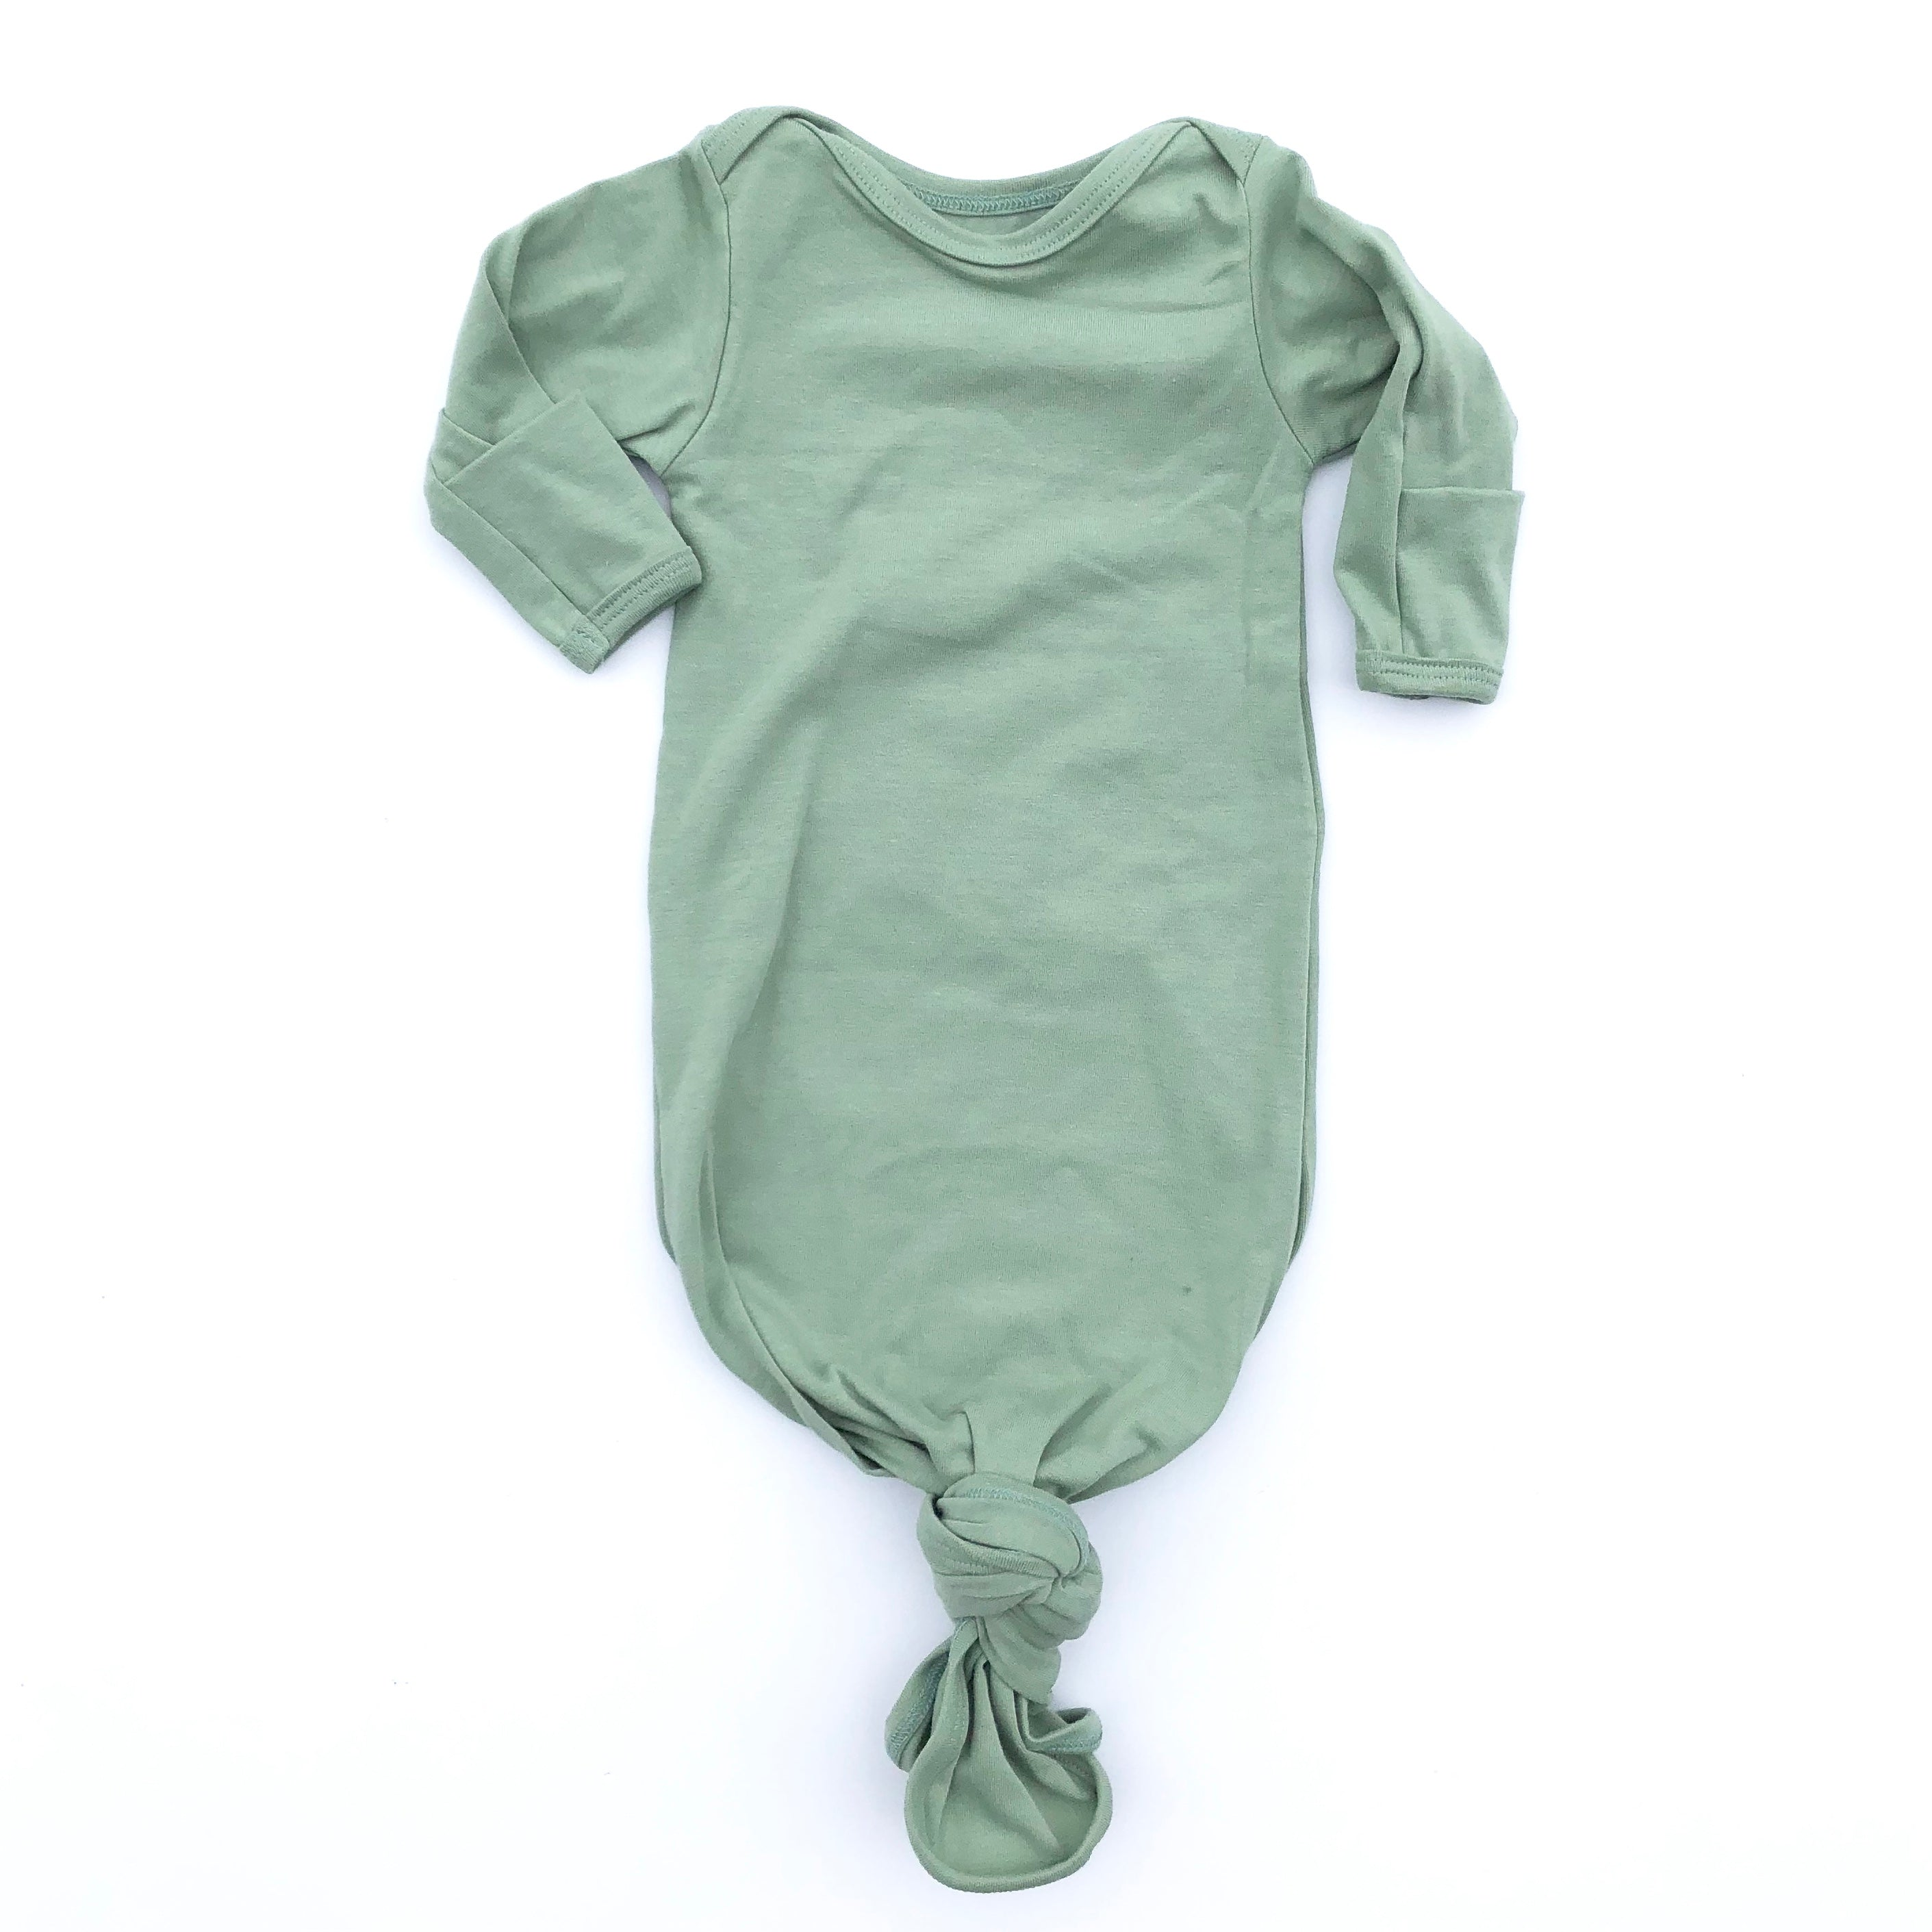 531872e8b24d7 Baby Gowns | Oh So Vera